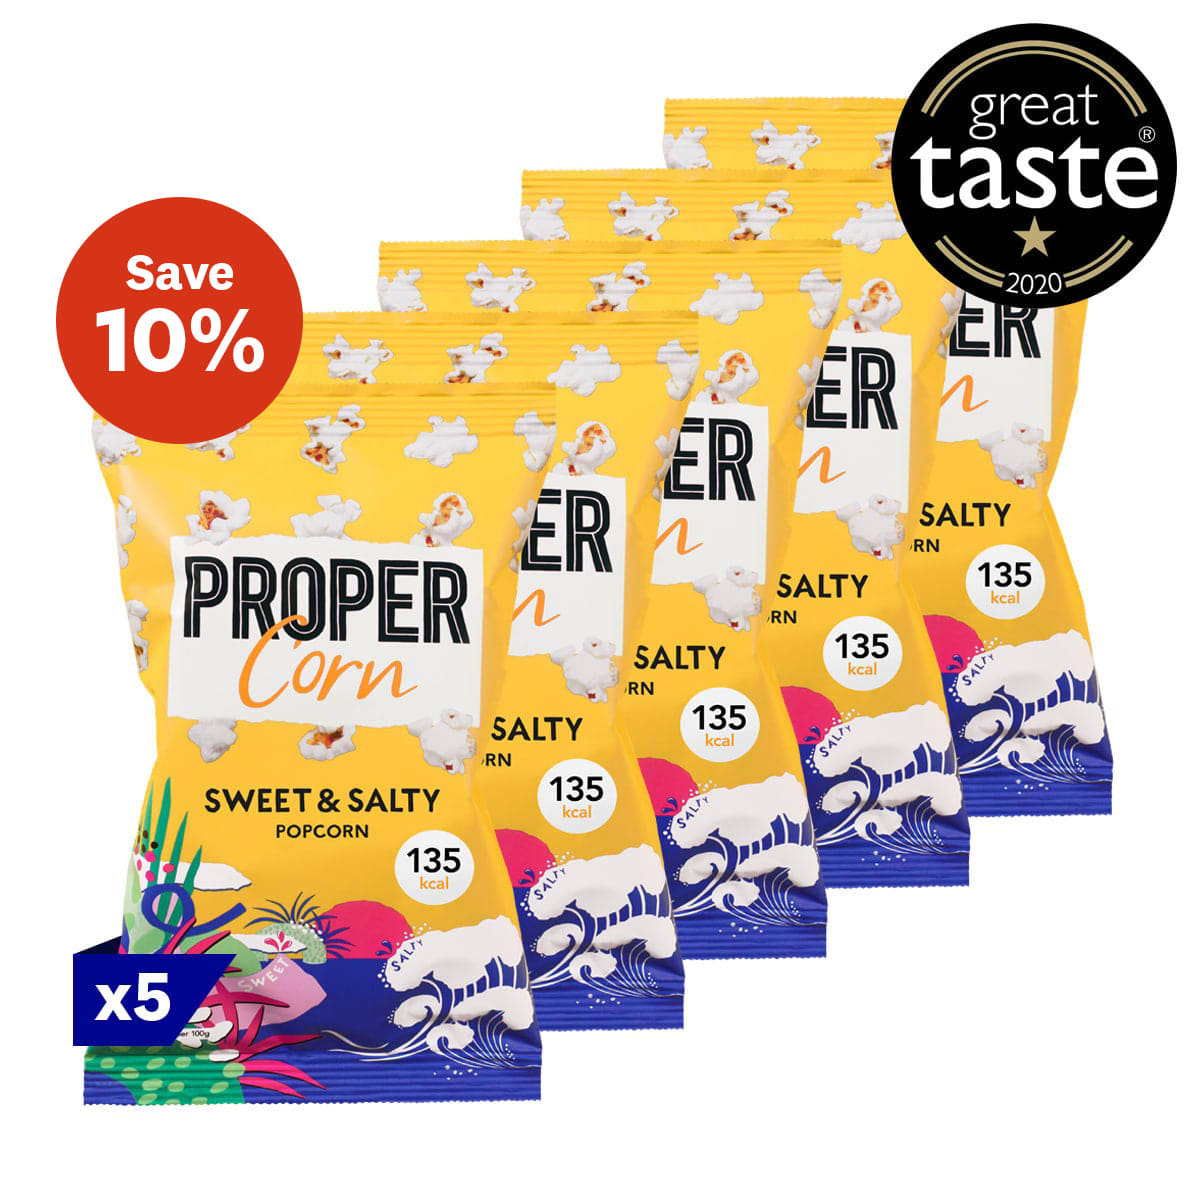 Pack of 5, Propercorn Sweet and Salty Popcorn, 30g bag, sea salt and sweet raw cane sugar, 5 SmartPoints values per bag, gluten free, suitable for vegans